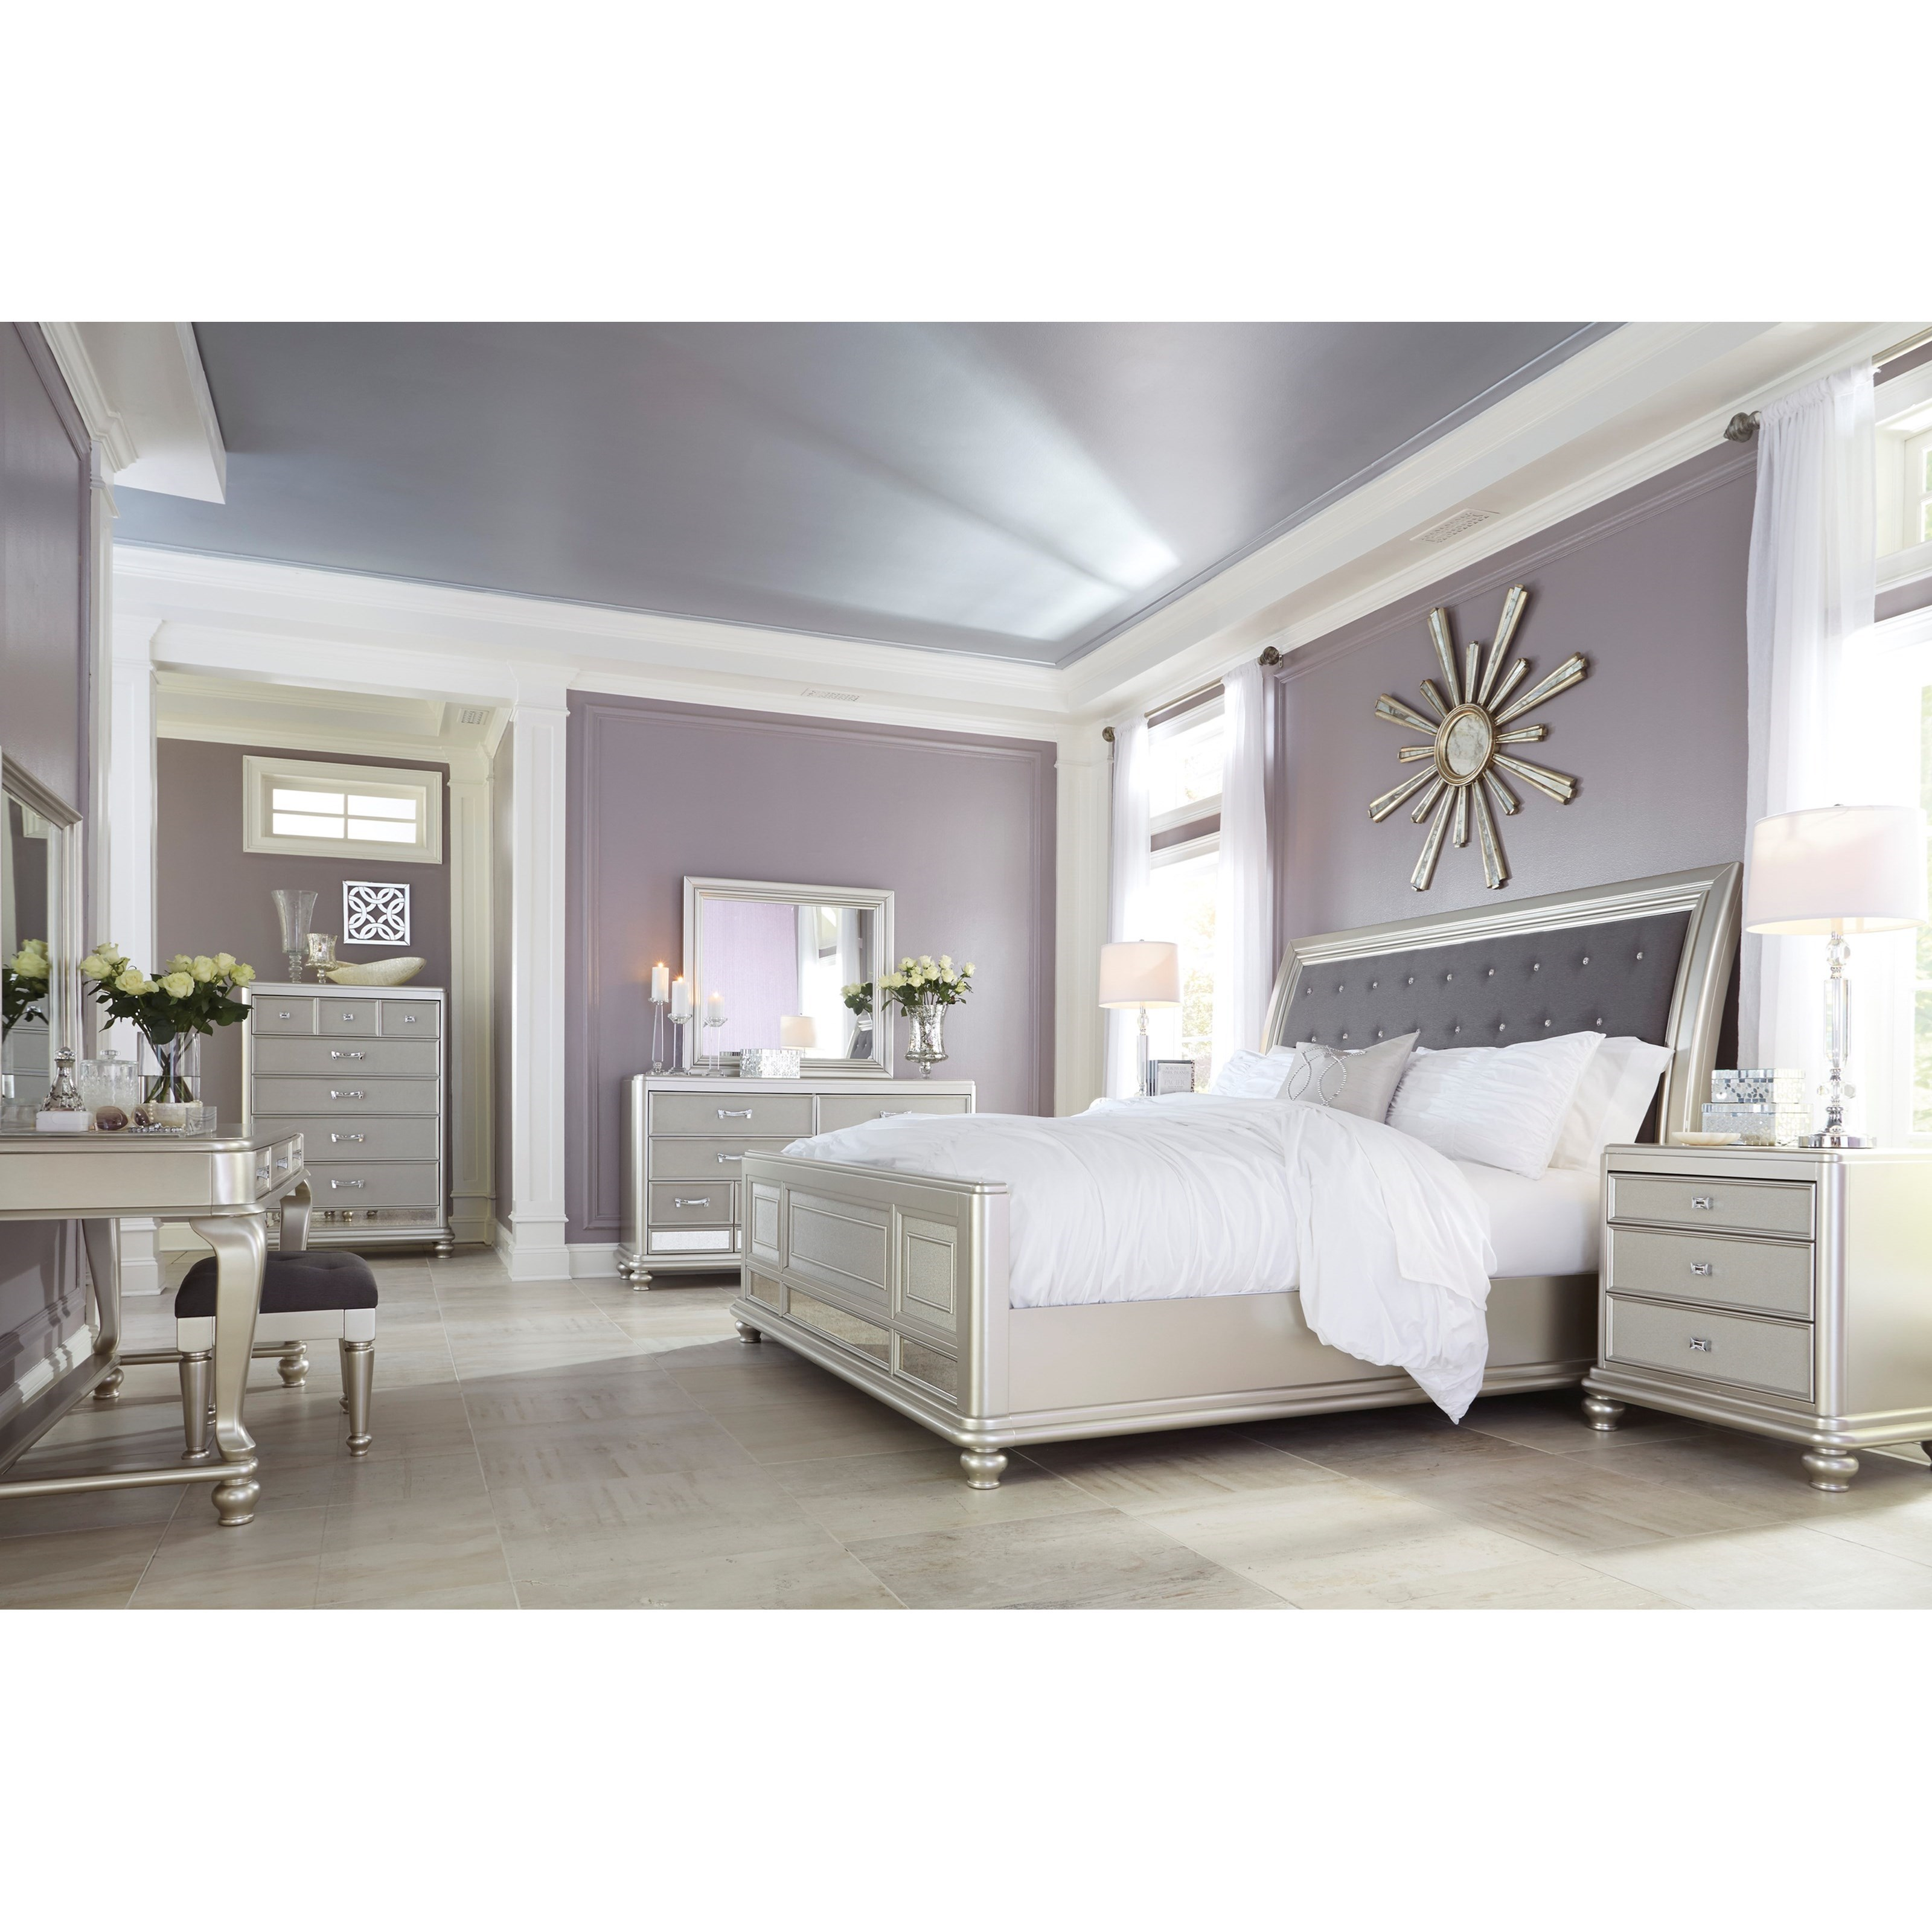 Queen bed with upholstered sleigh headboard